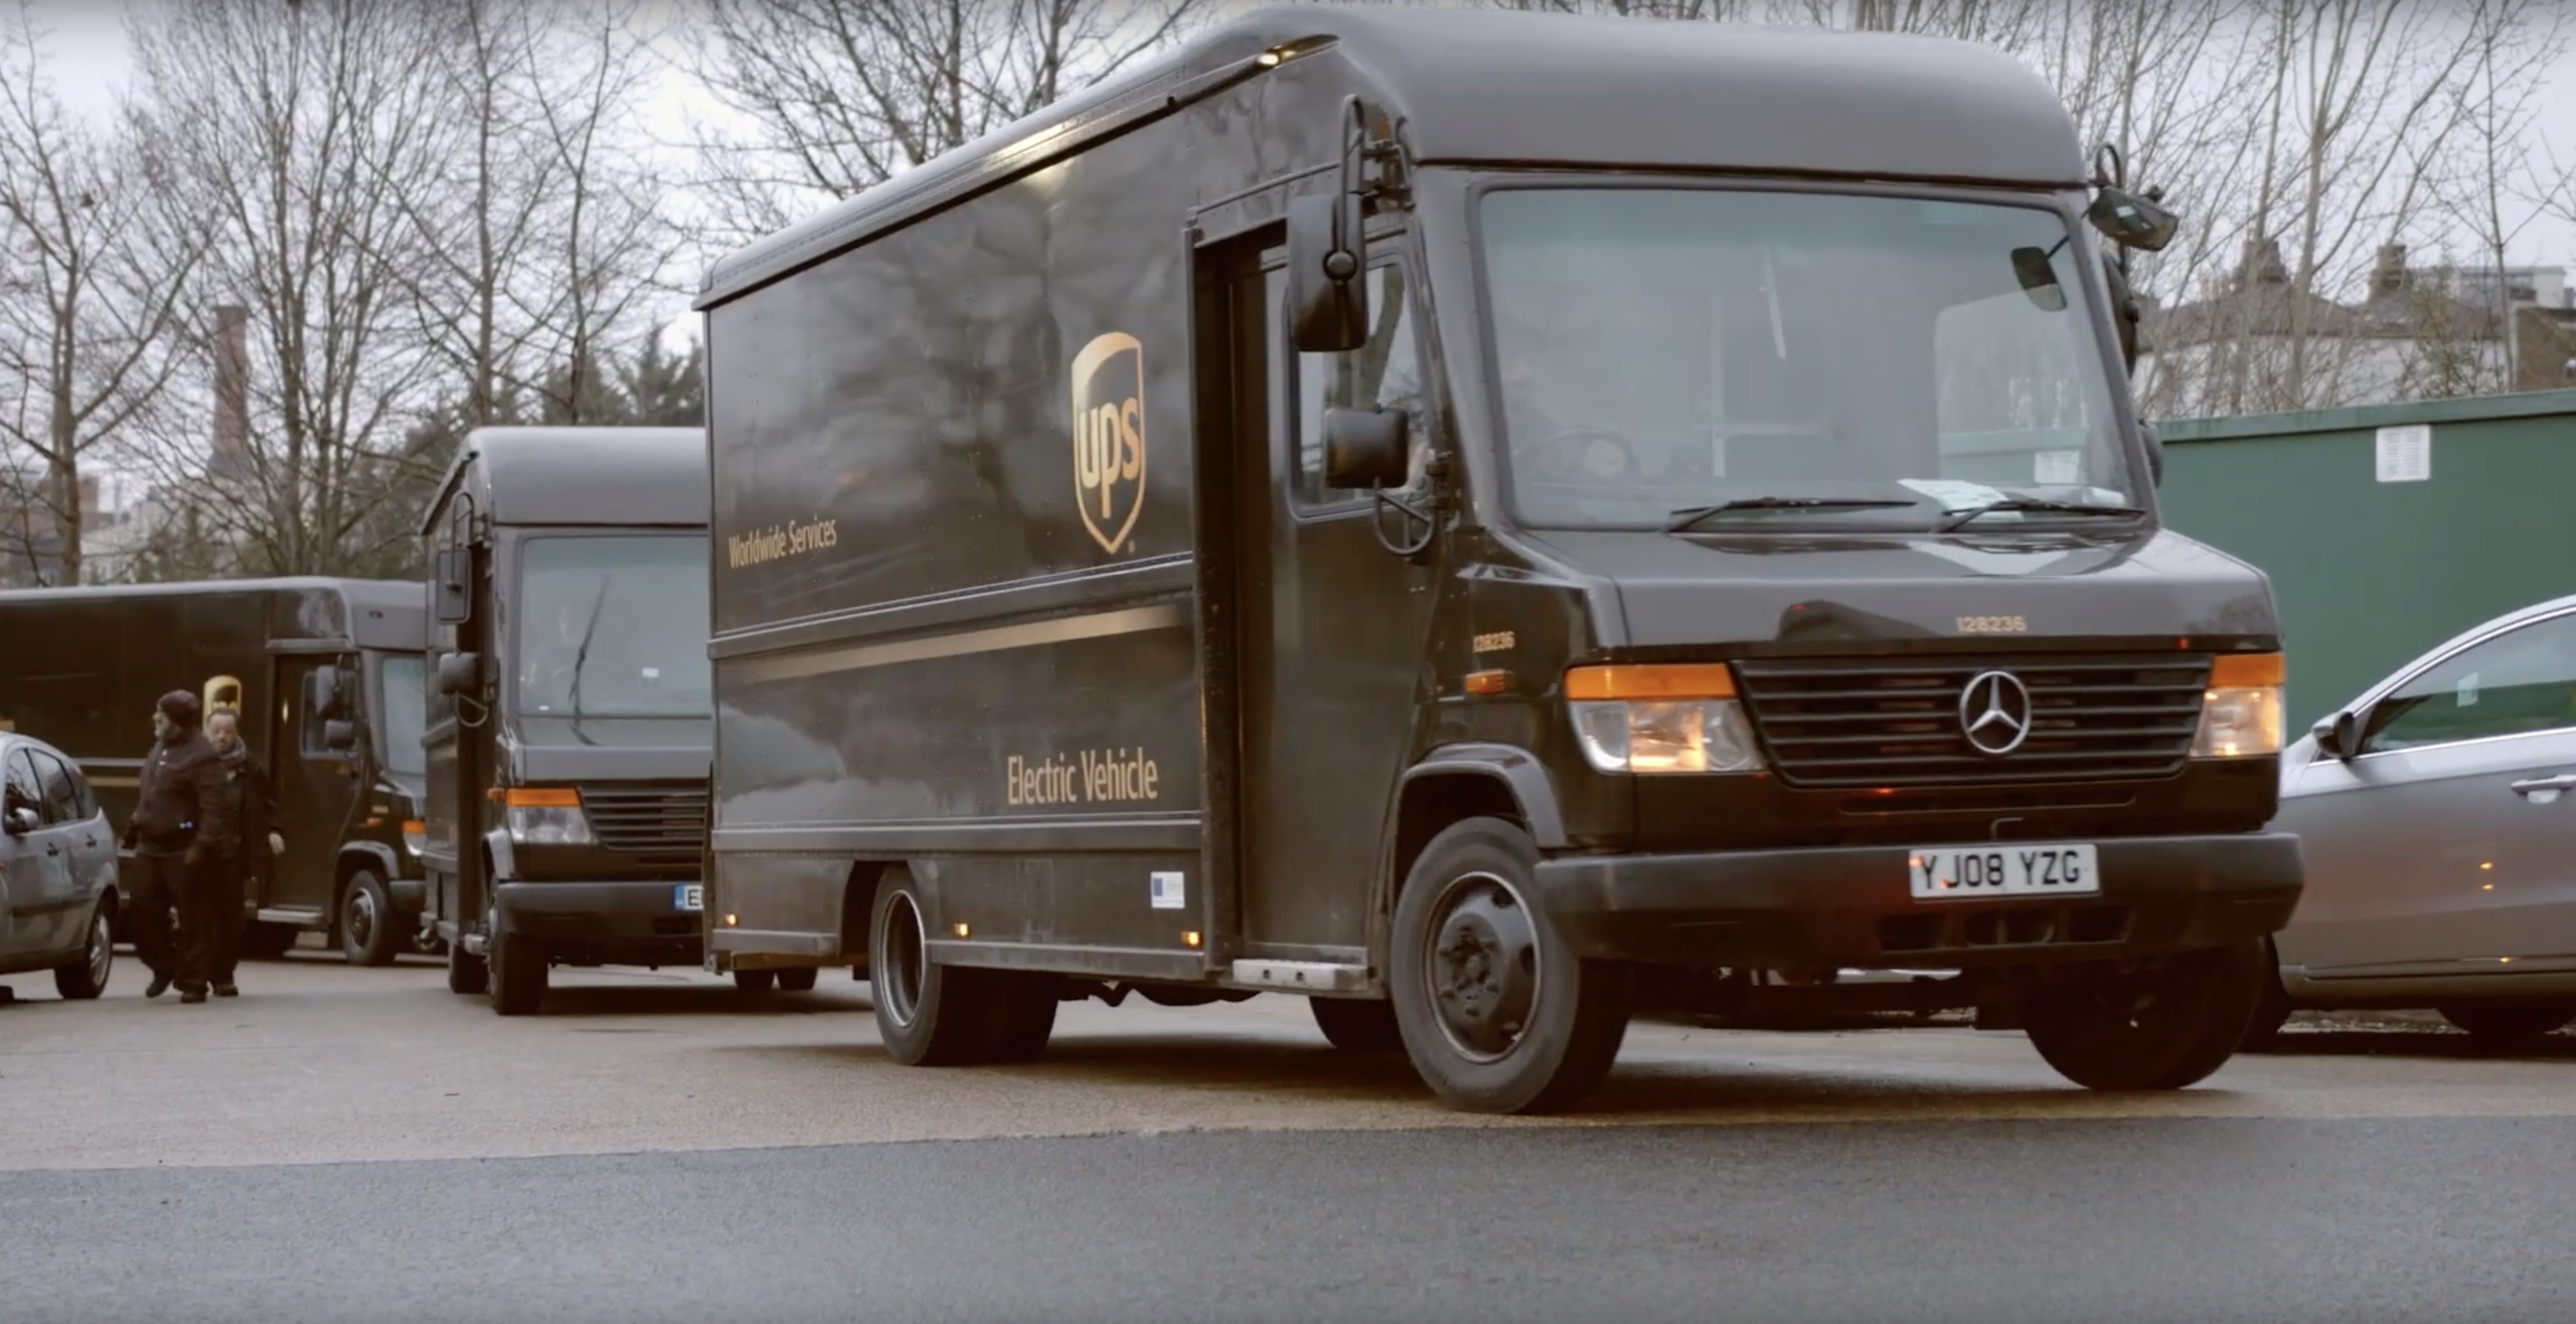 UPS electrifies its London delivery fleet - Parcel and